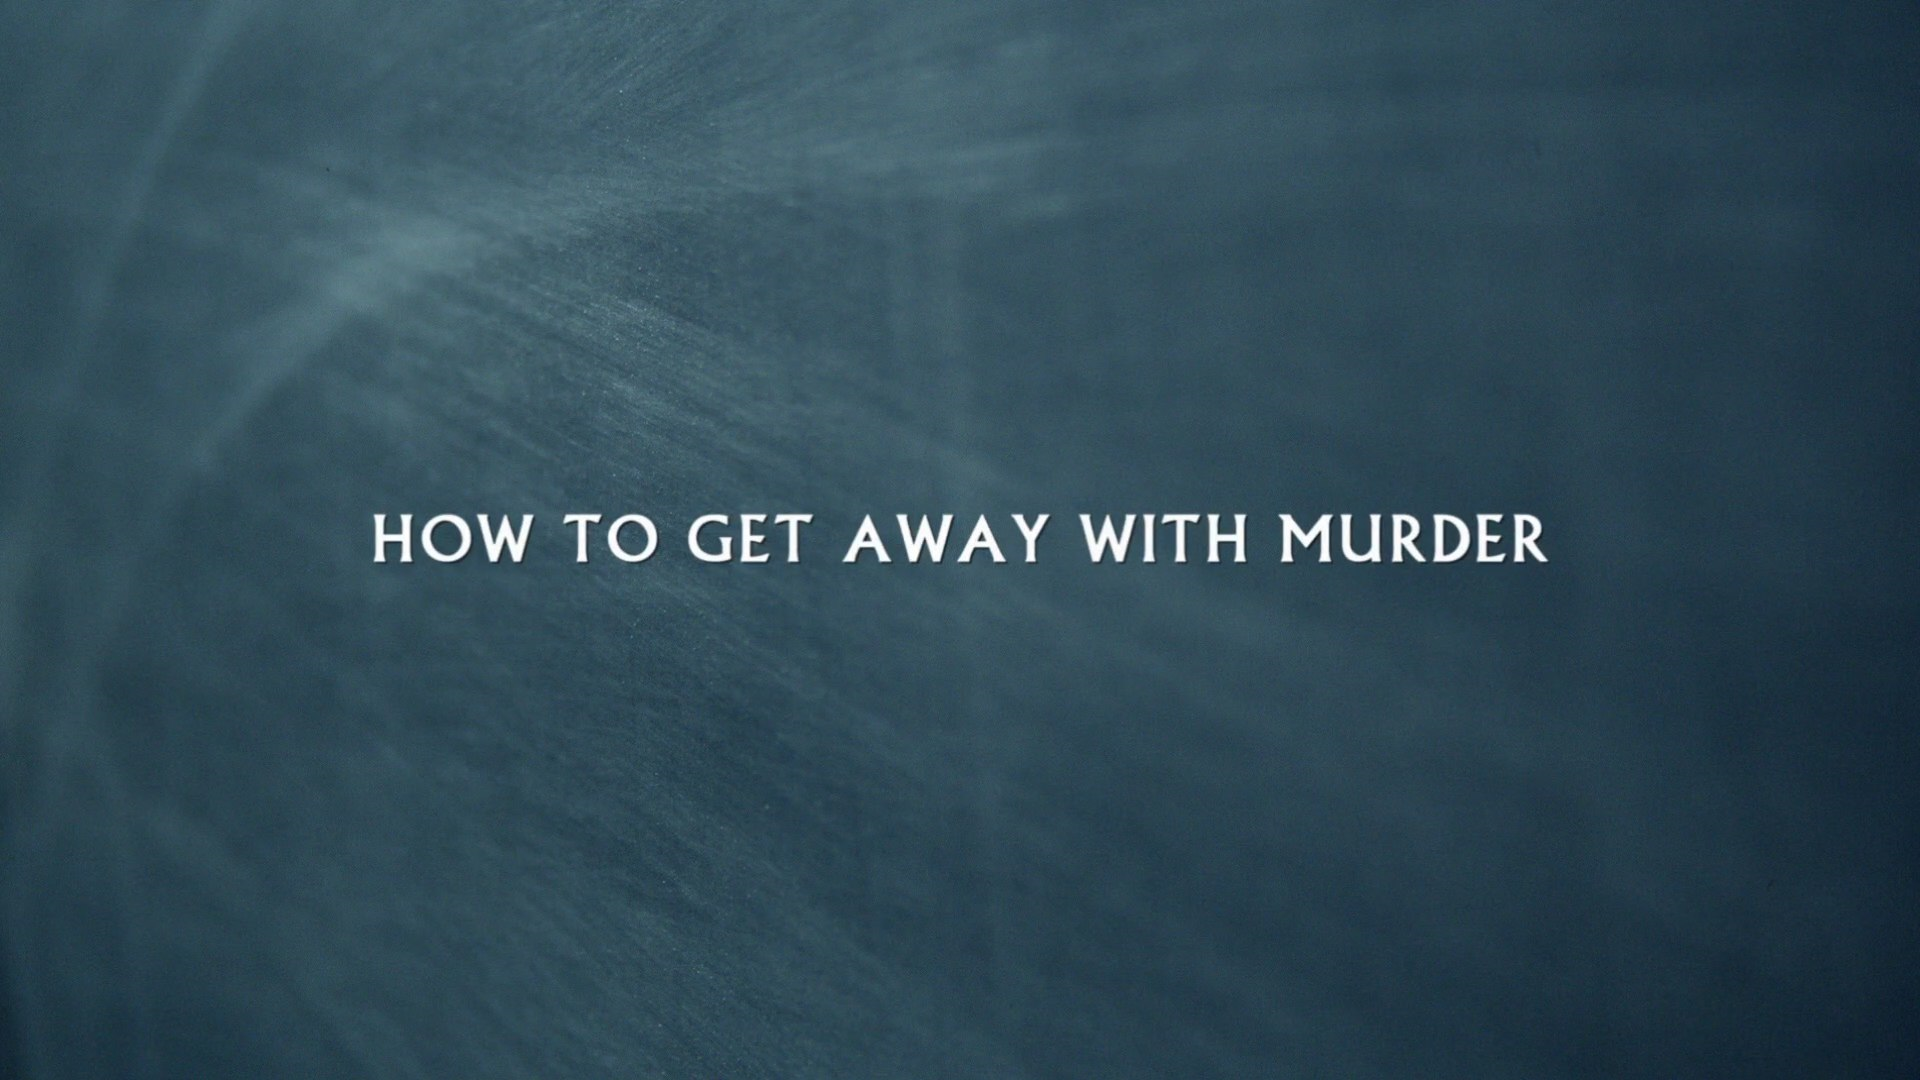 How to Get Away with Murder - How to Get Away with Murder Wiki